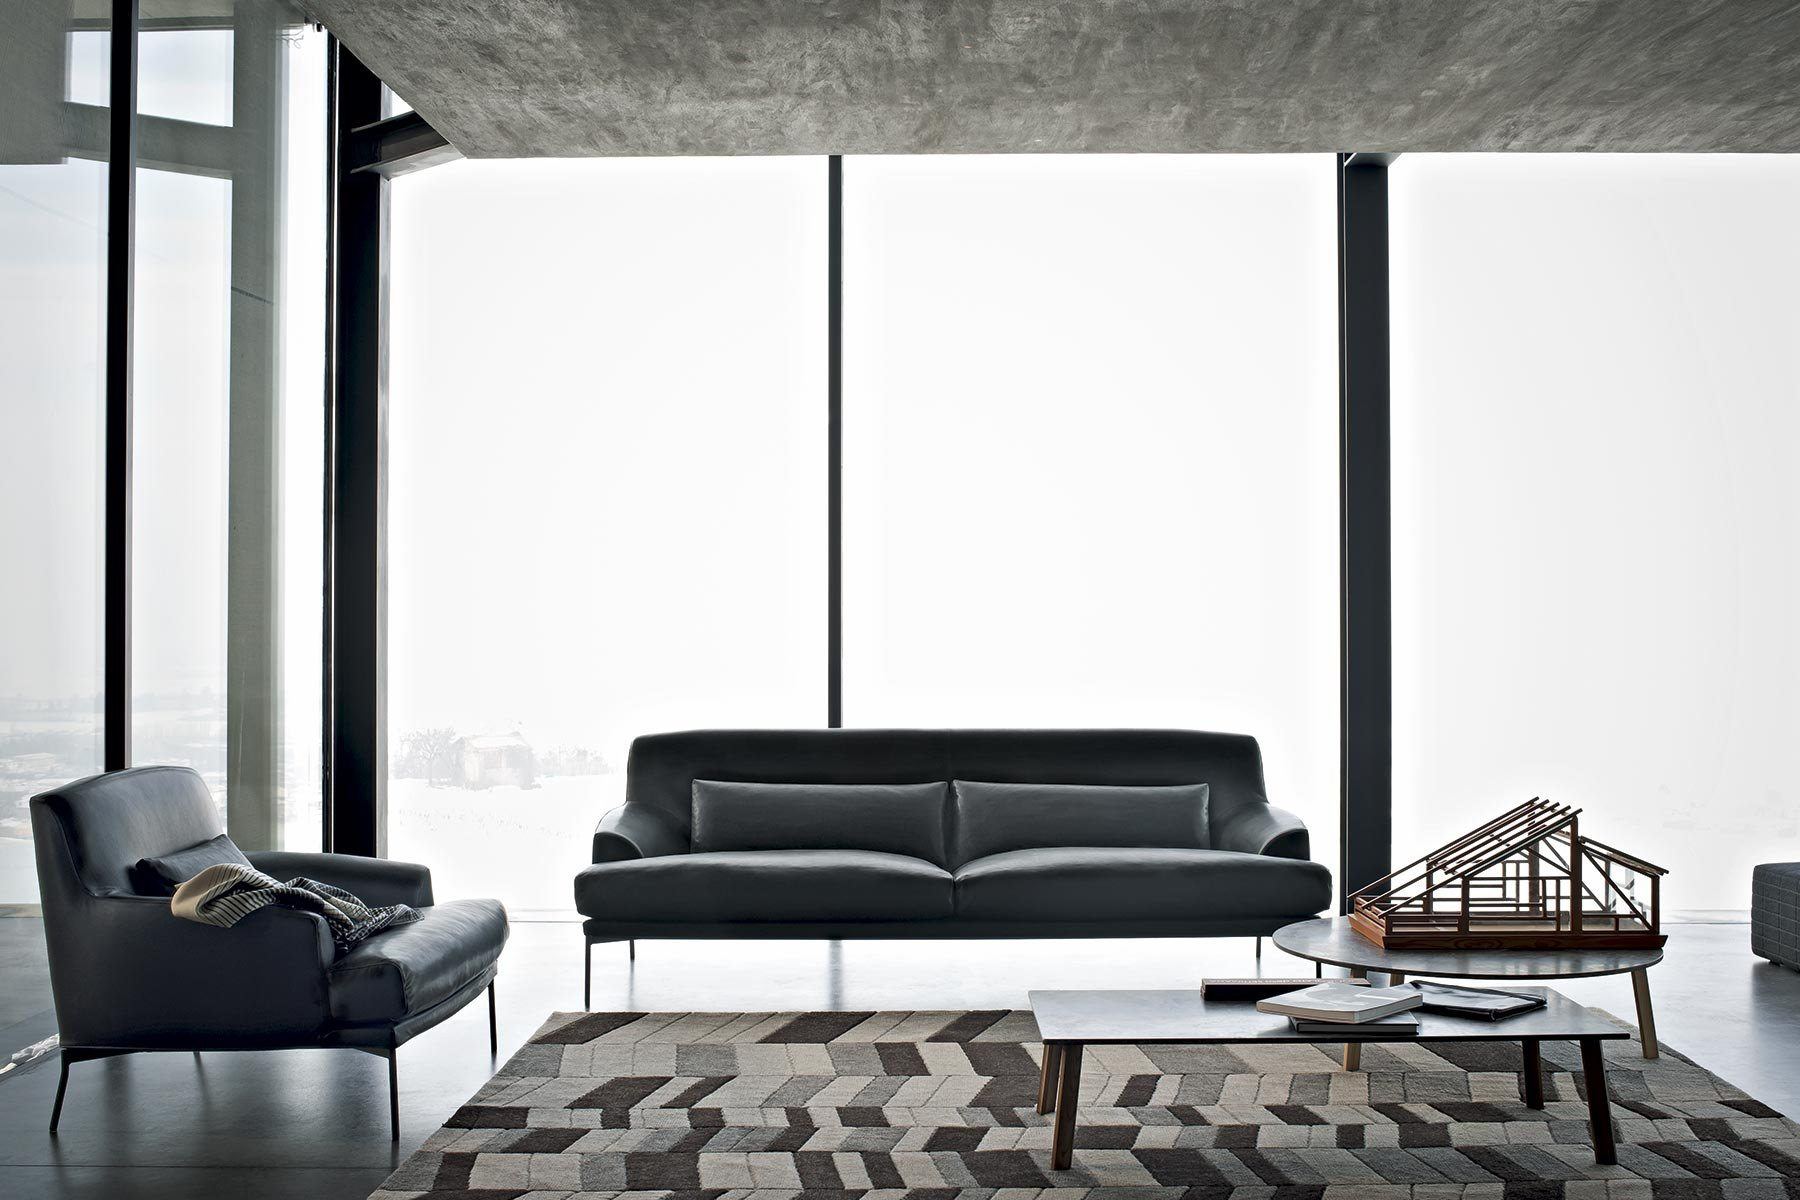 Montevideo sofa from Tacchini, designed by Claesson Koivisto Rune